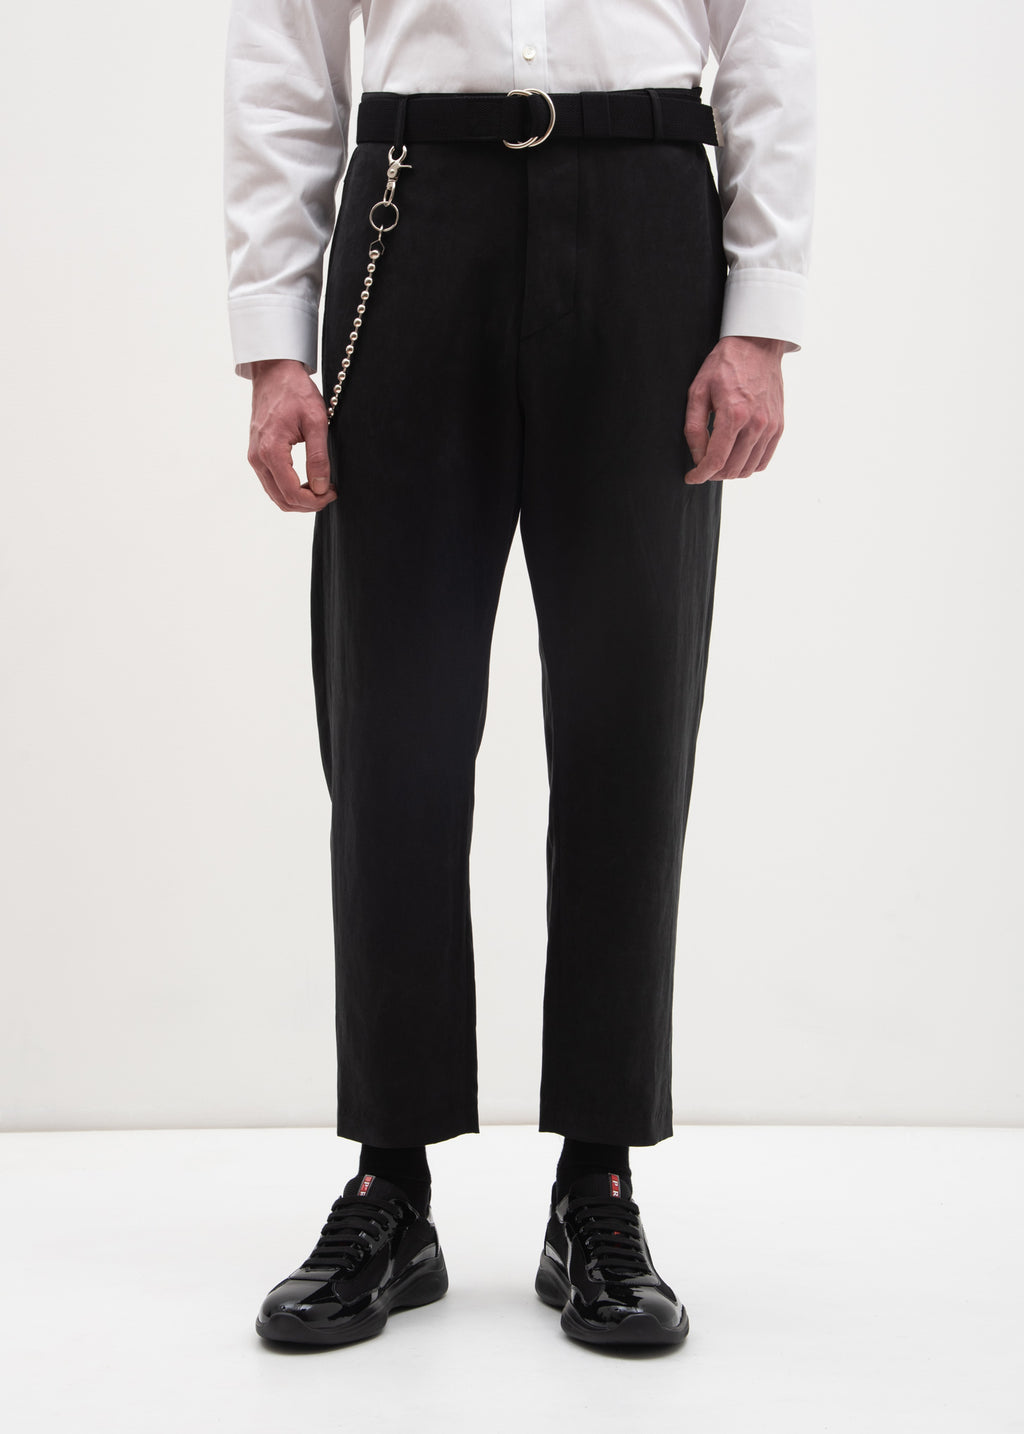 Black Trouser w/ Chain